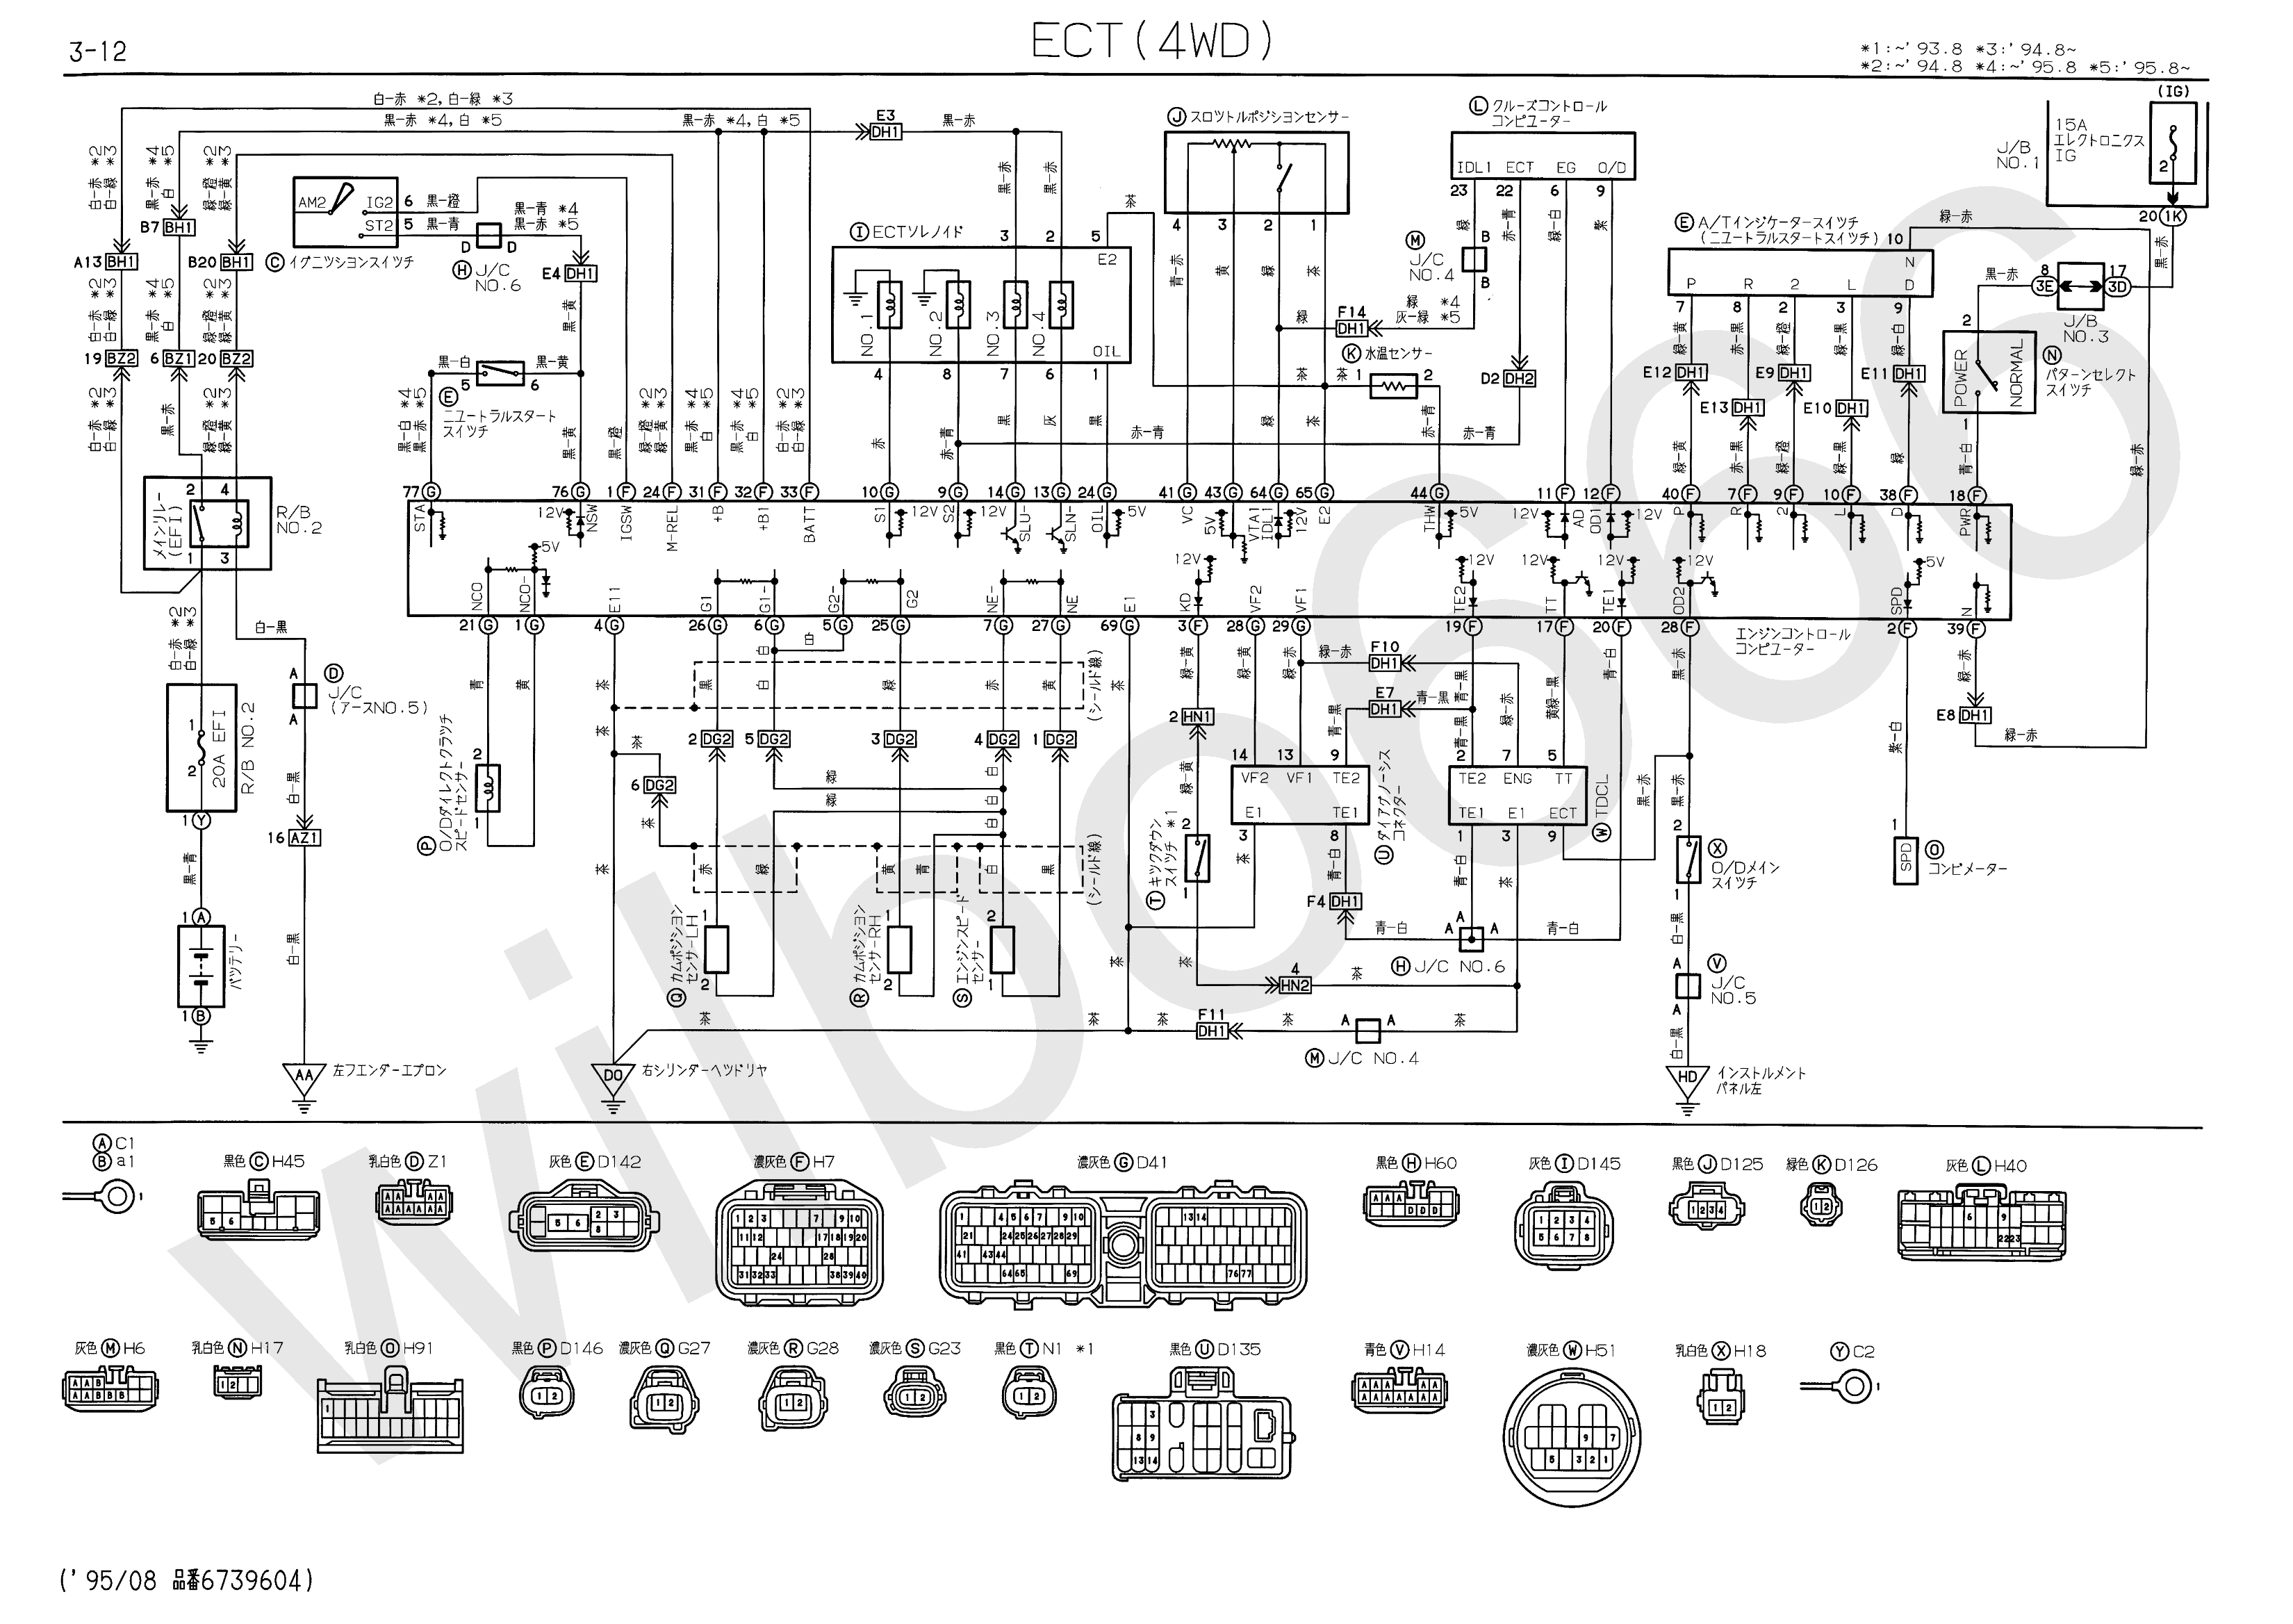 nissan diagrams   nissan elgrand e51 fuse box diagram